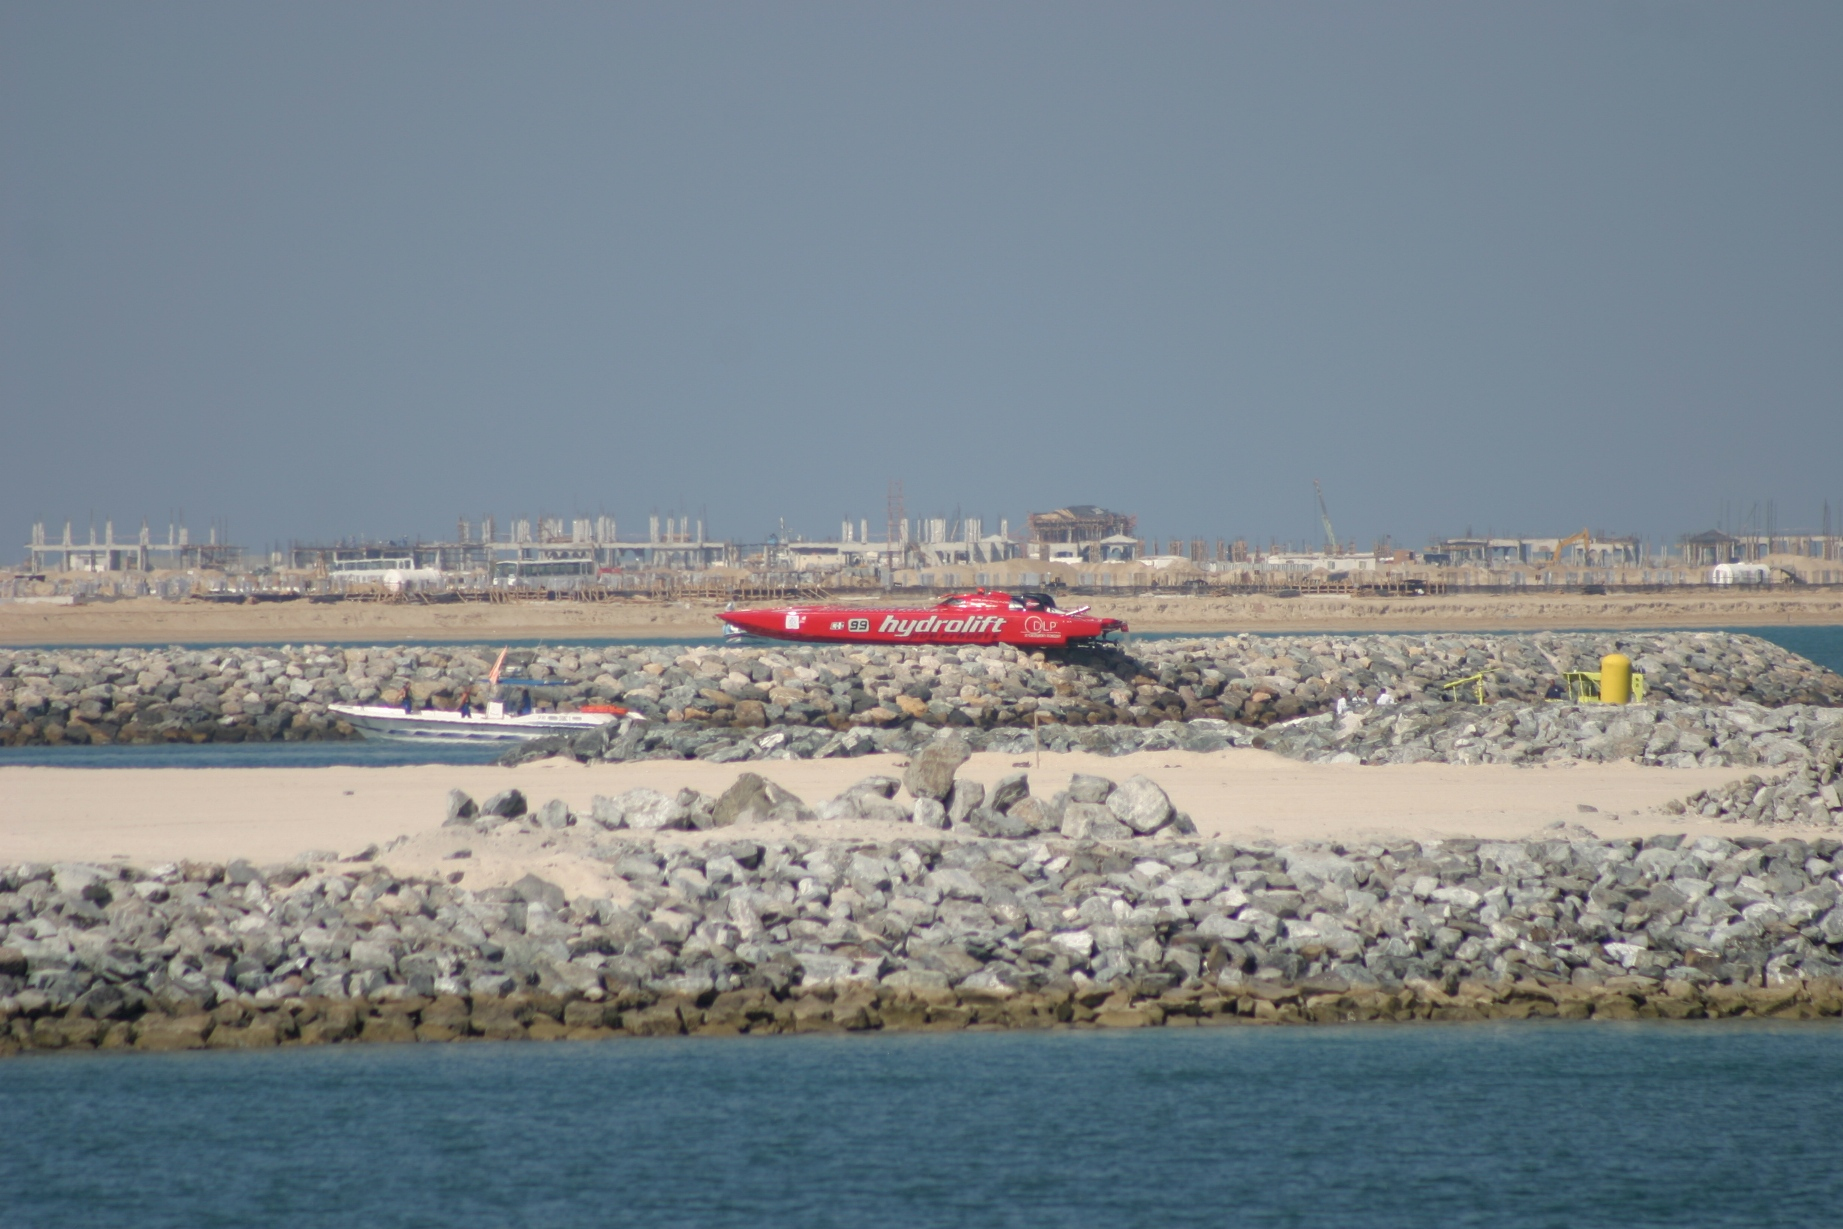 Offshore on the rocks in Dubai... ops